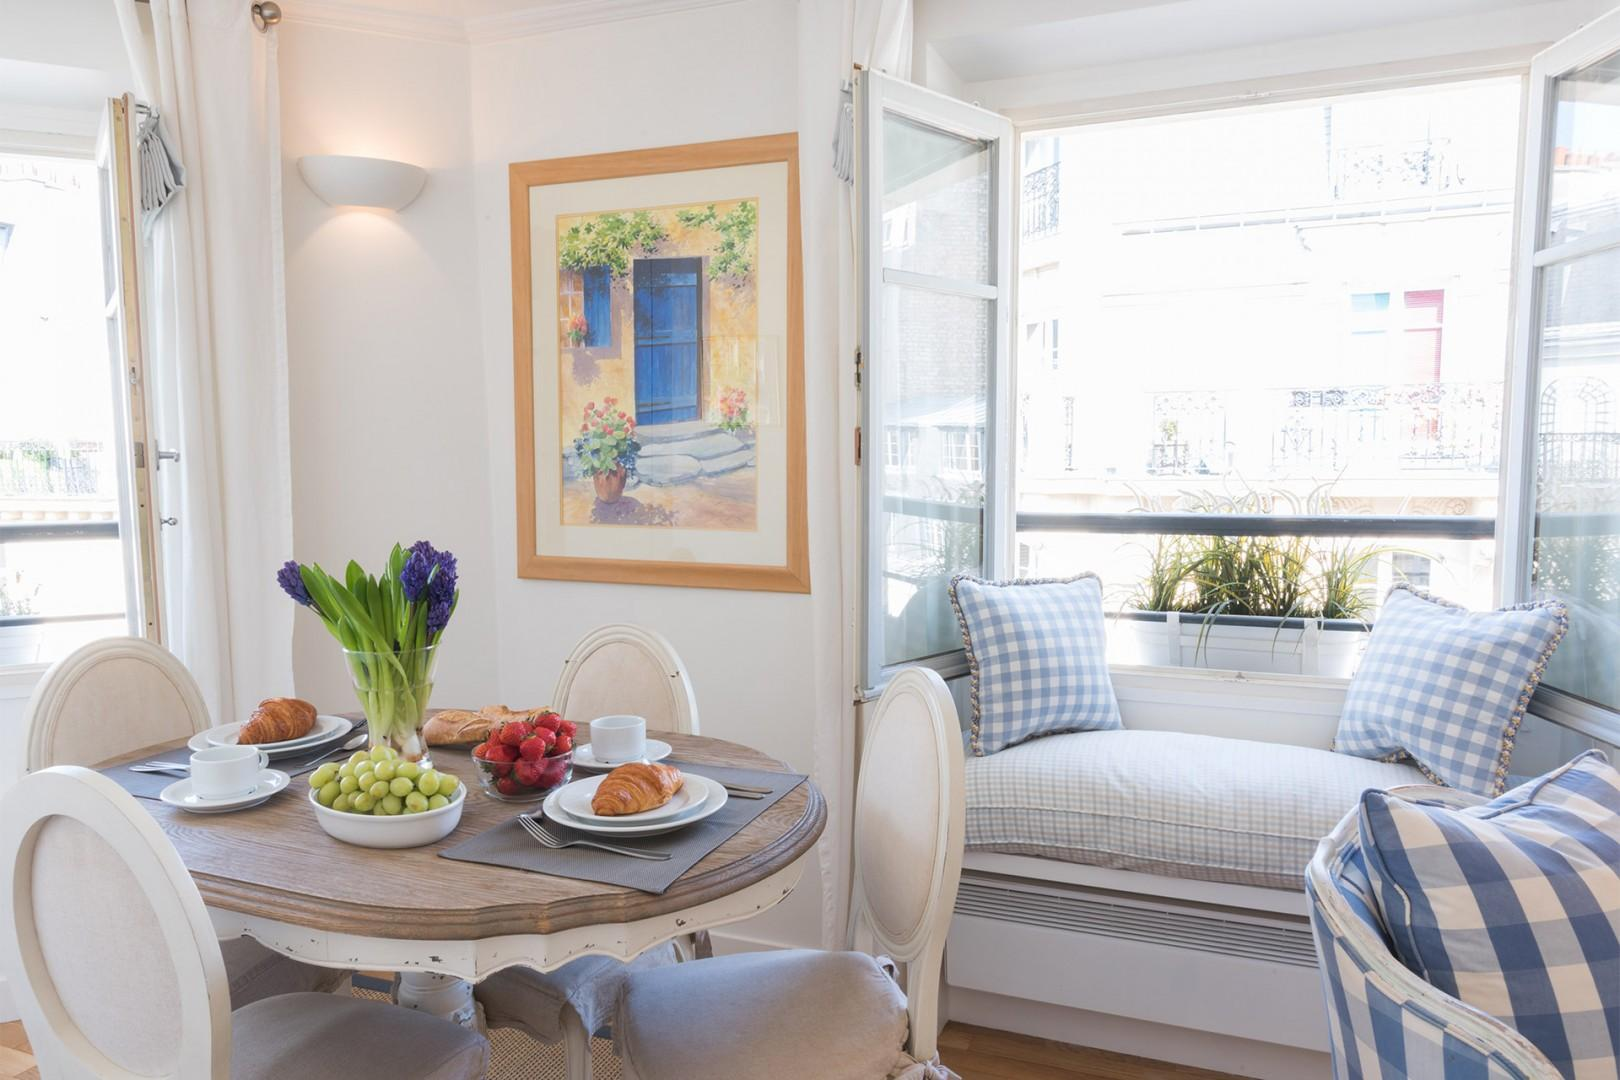 Relax with a book or magazine in the charming window seat.